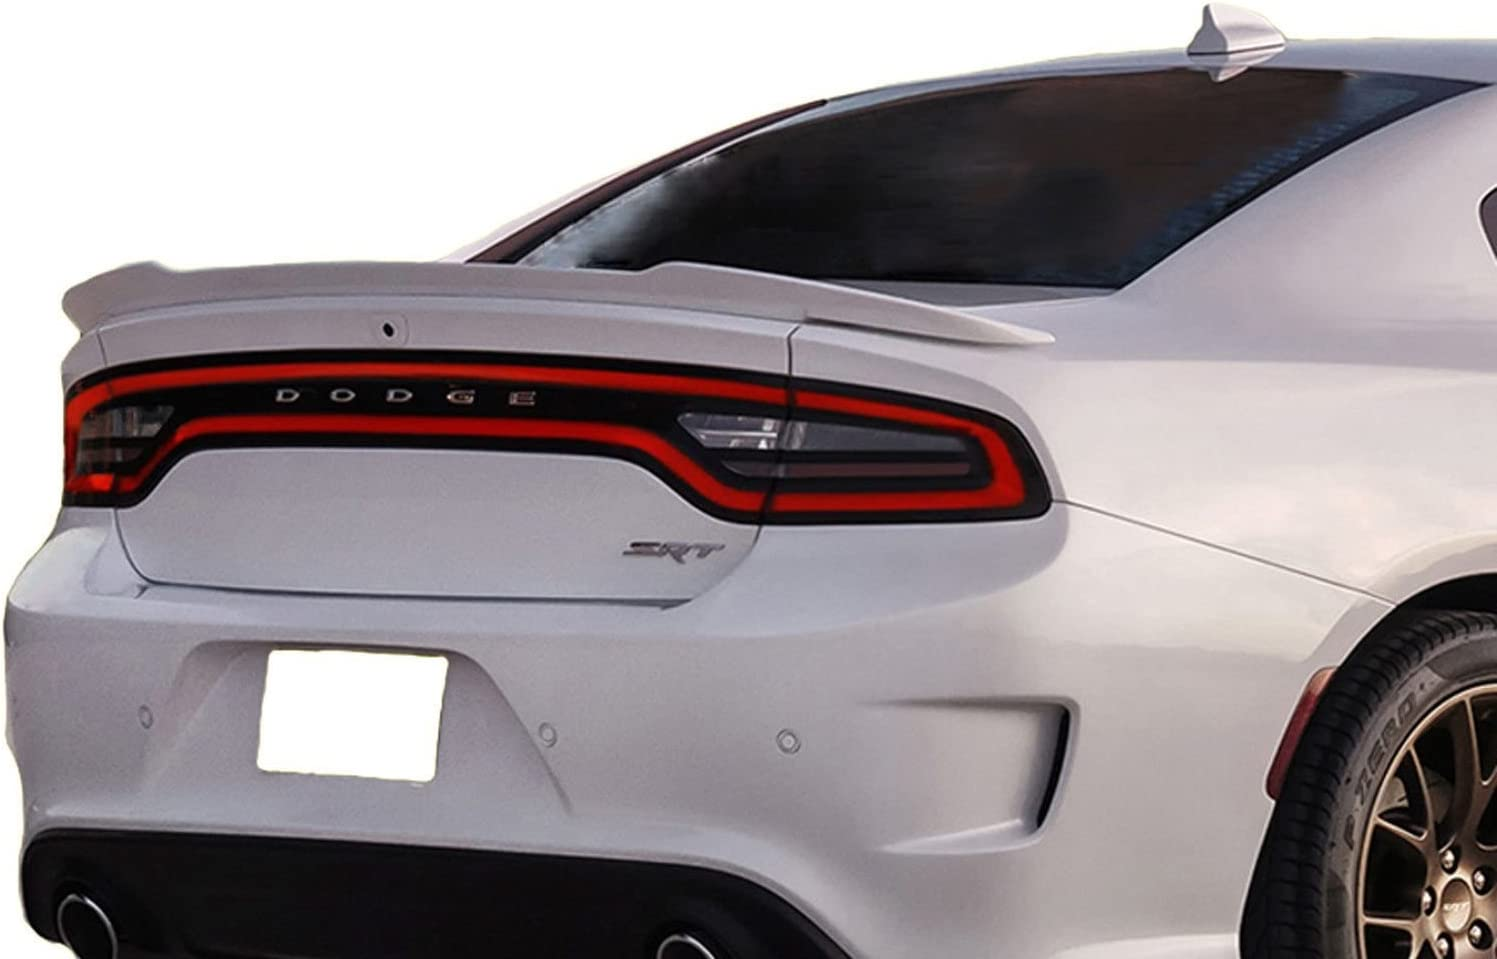 amazon com california dream compatible with 2015 18 dodge charger factory style hellcat spoiler painted destroyer gray pdn automotive california dream compatible with 2015 18 dodge charger factory style hellcat spoiler painted destroyer gray pdn